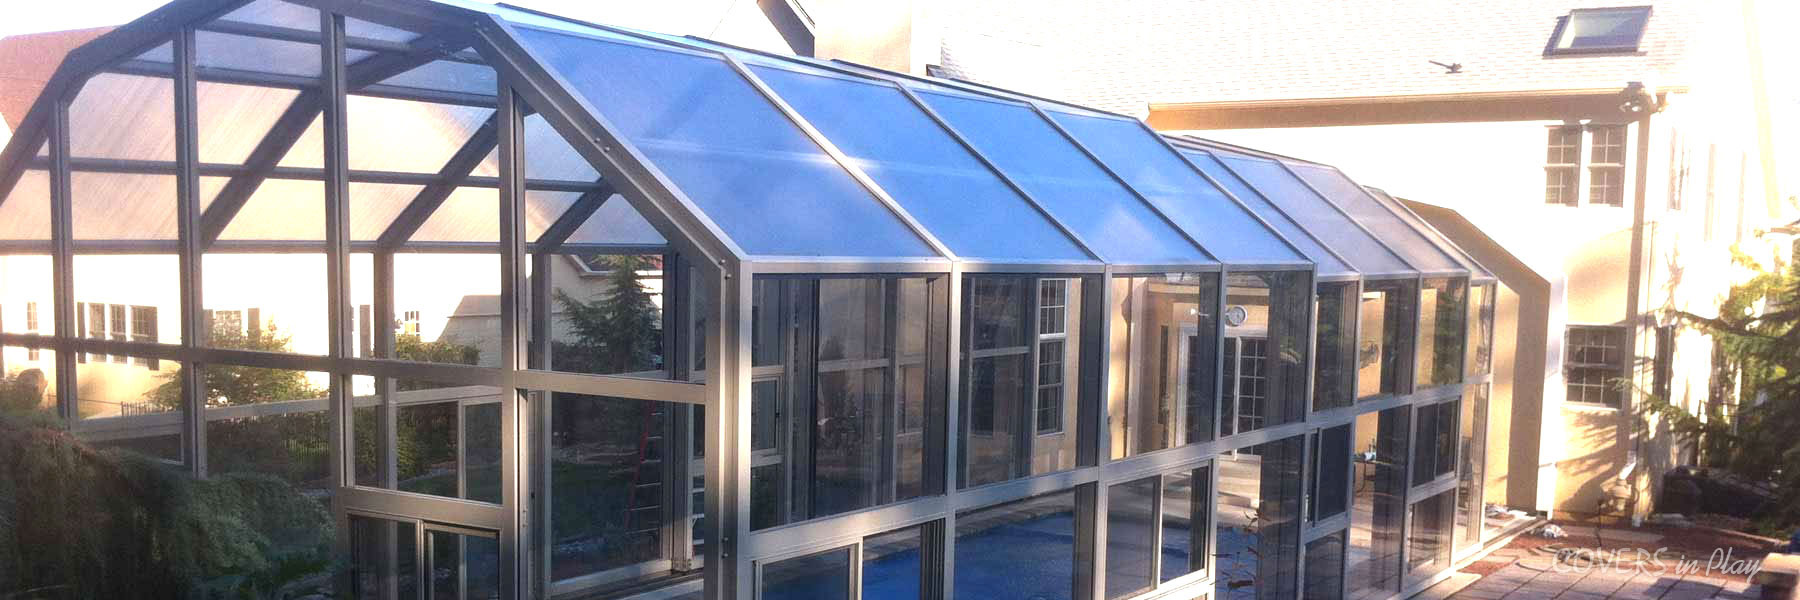 Pool Enclosure Designu201d